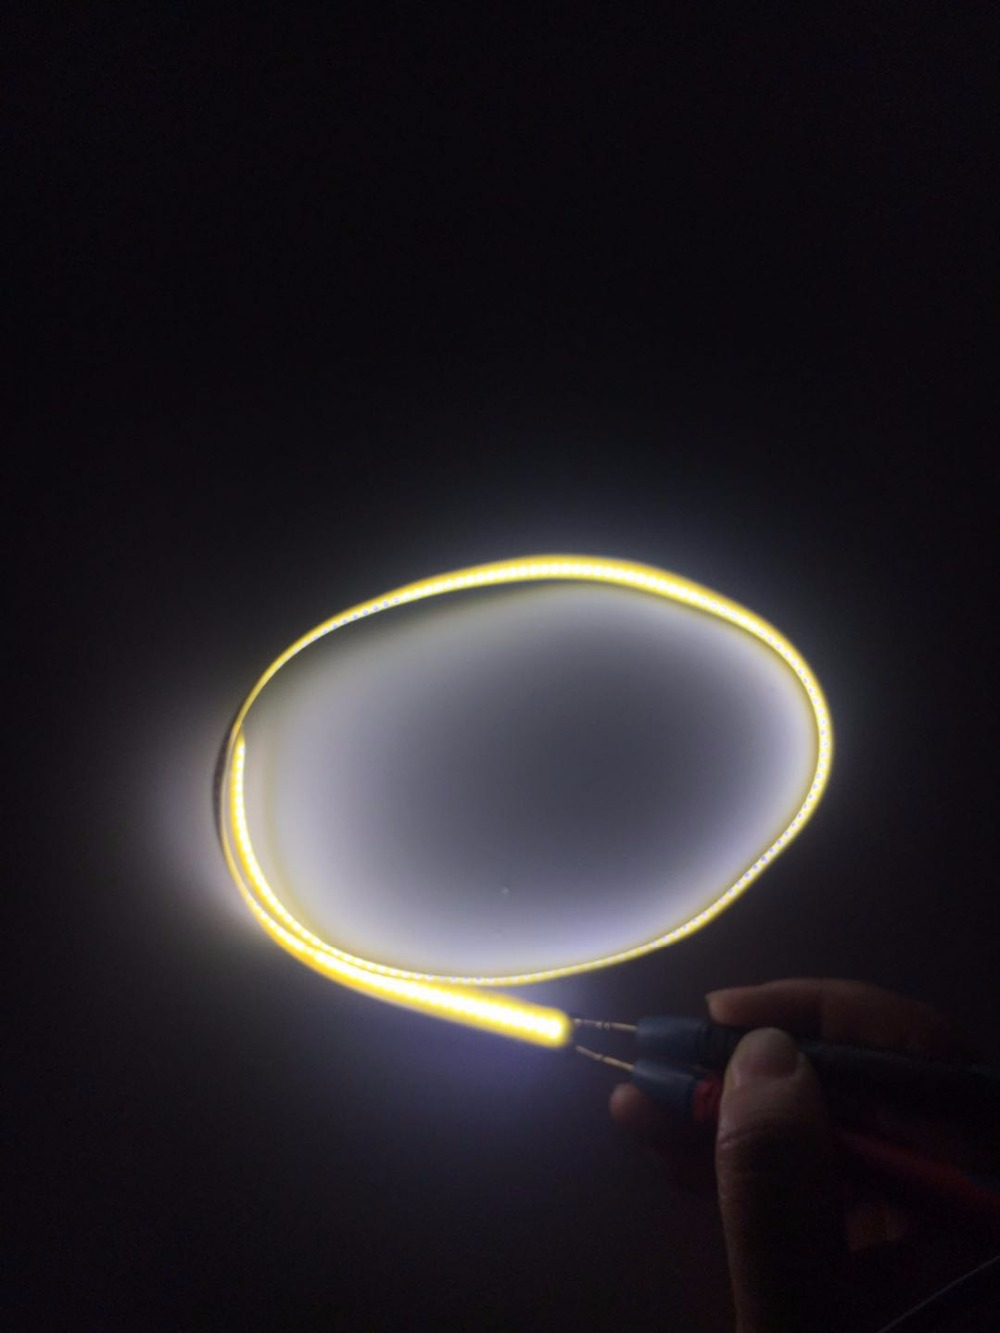 New Flexible FR4 cob led strip DC3-4V 5W 180 led chips L550X10MM 3000k RA80 500LM No spot Linear light For DIY SIZE design